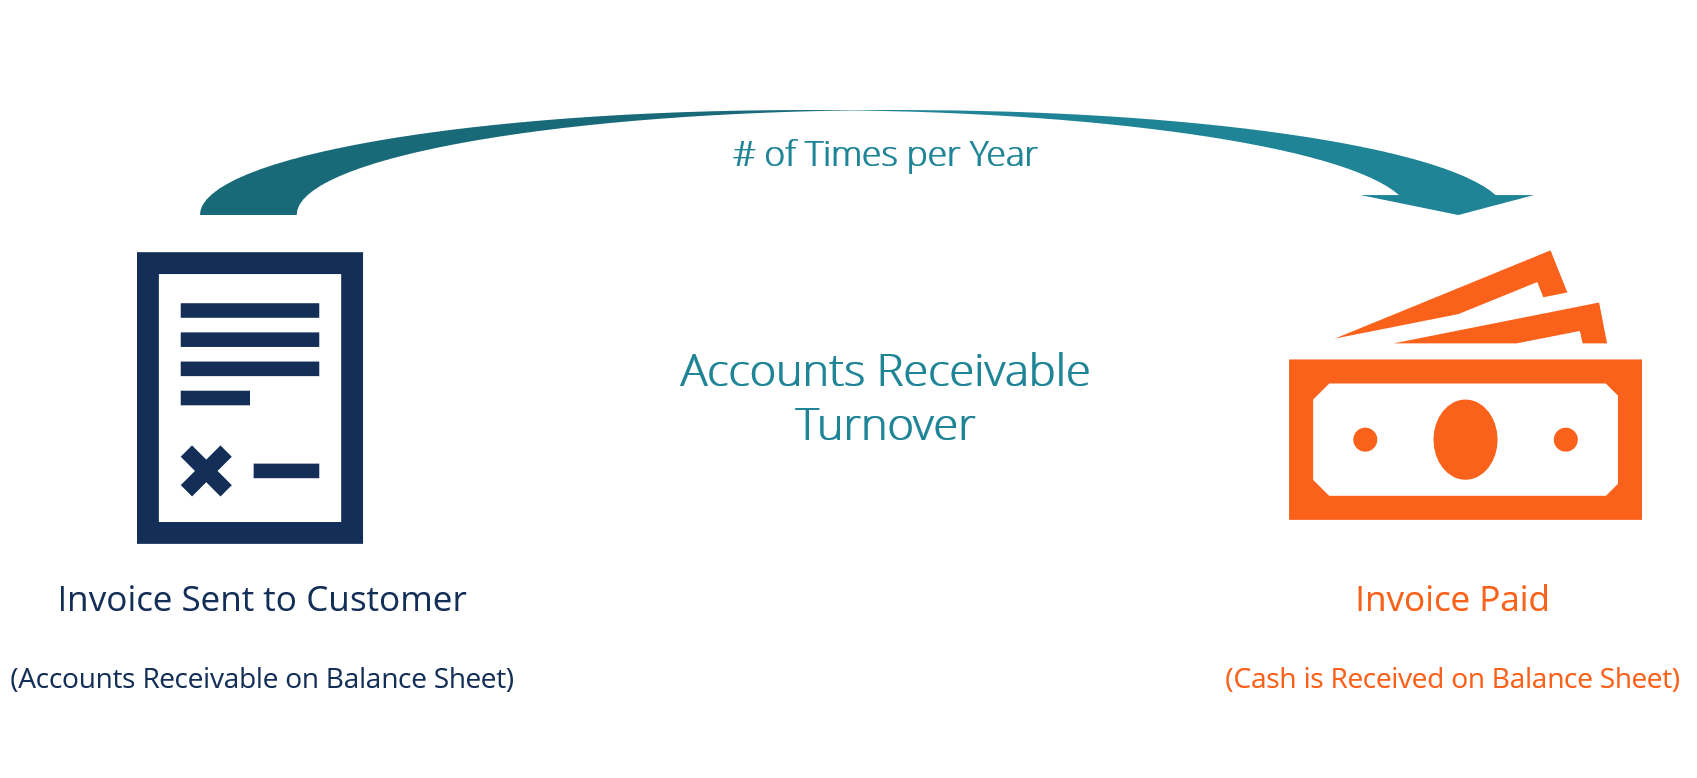 Accounts Receivable Turnover Ratio Diagram